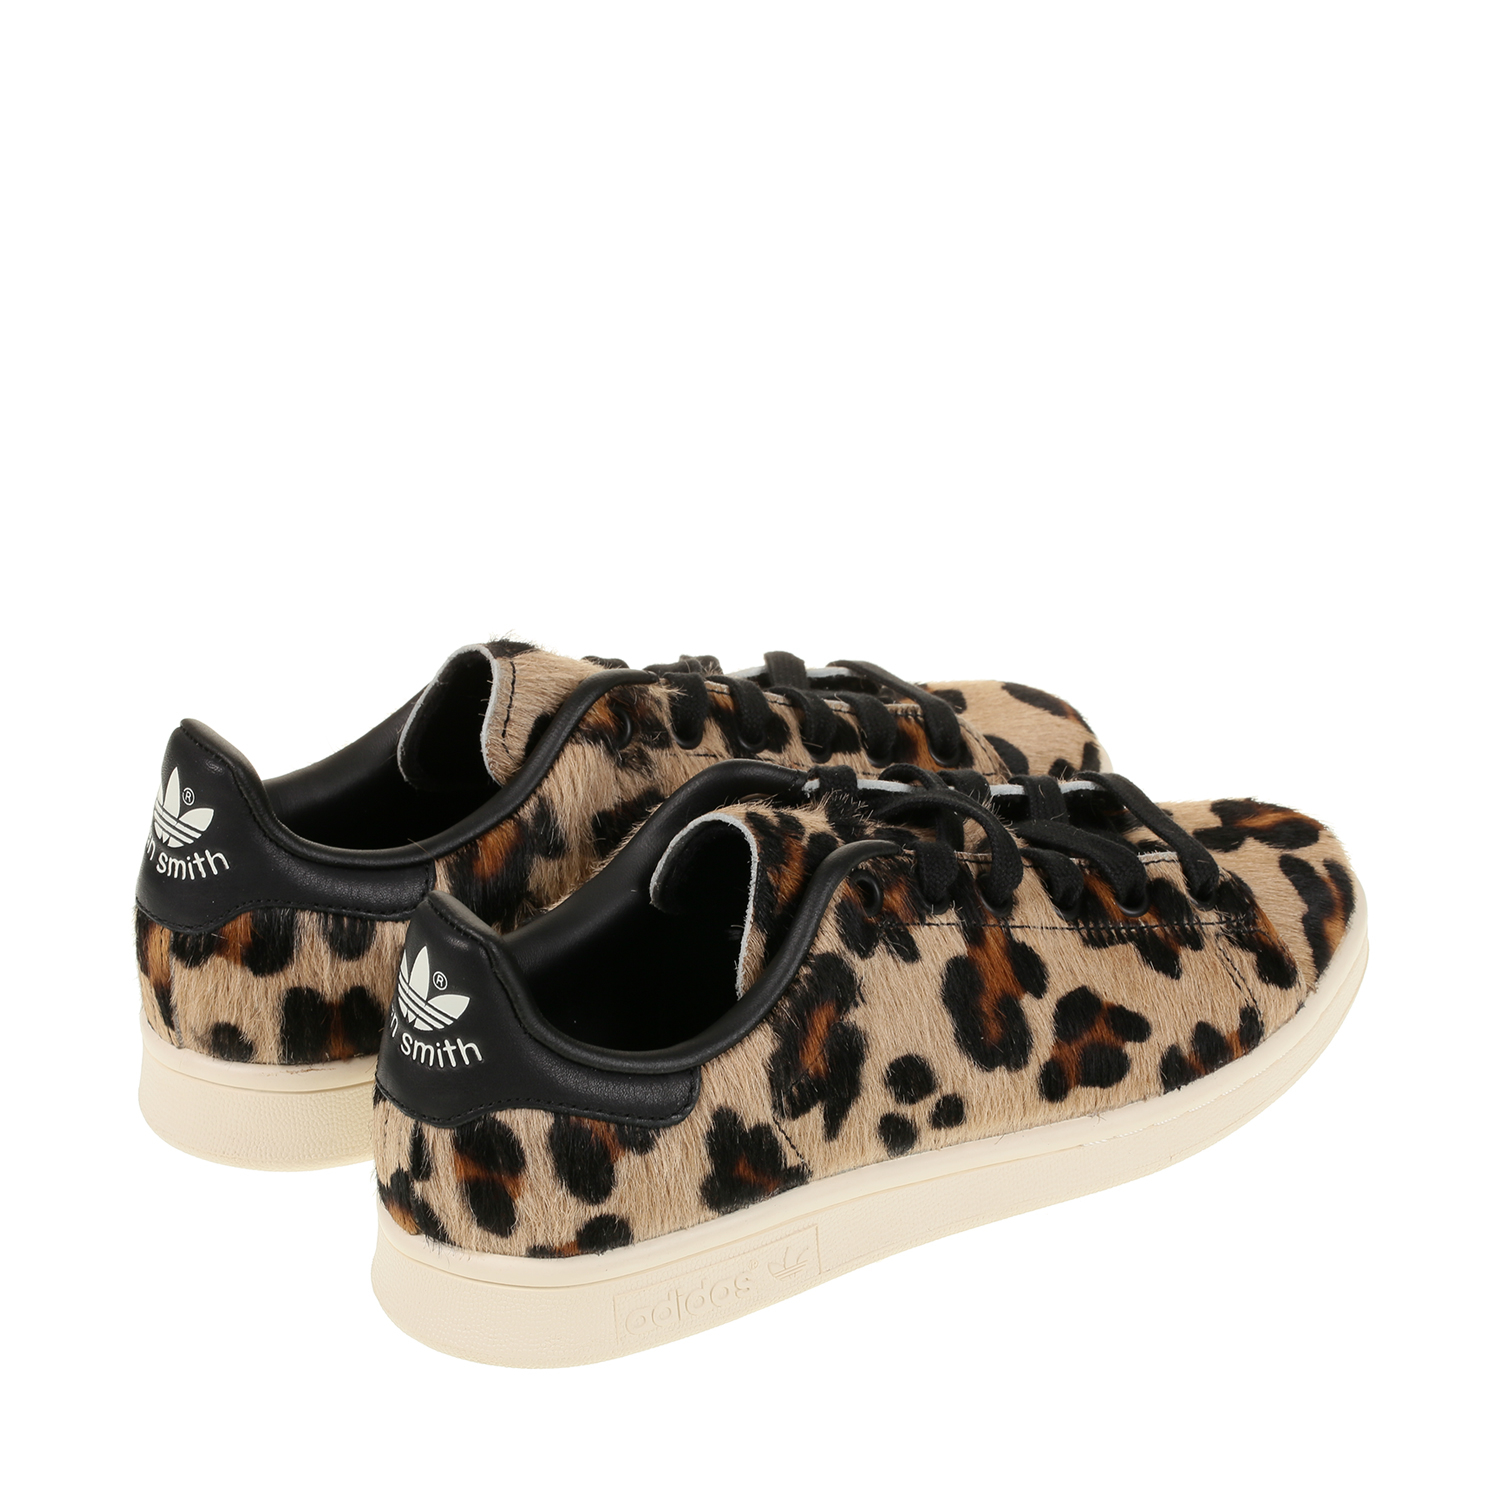 adidas stan smith animal print. Black Bedroom Furniture Sets. Home Design Ideas